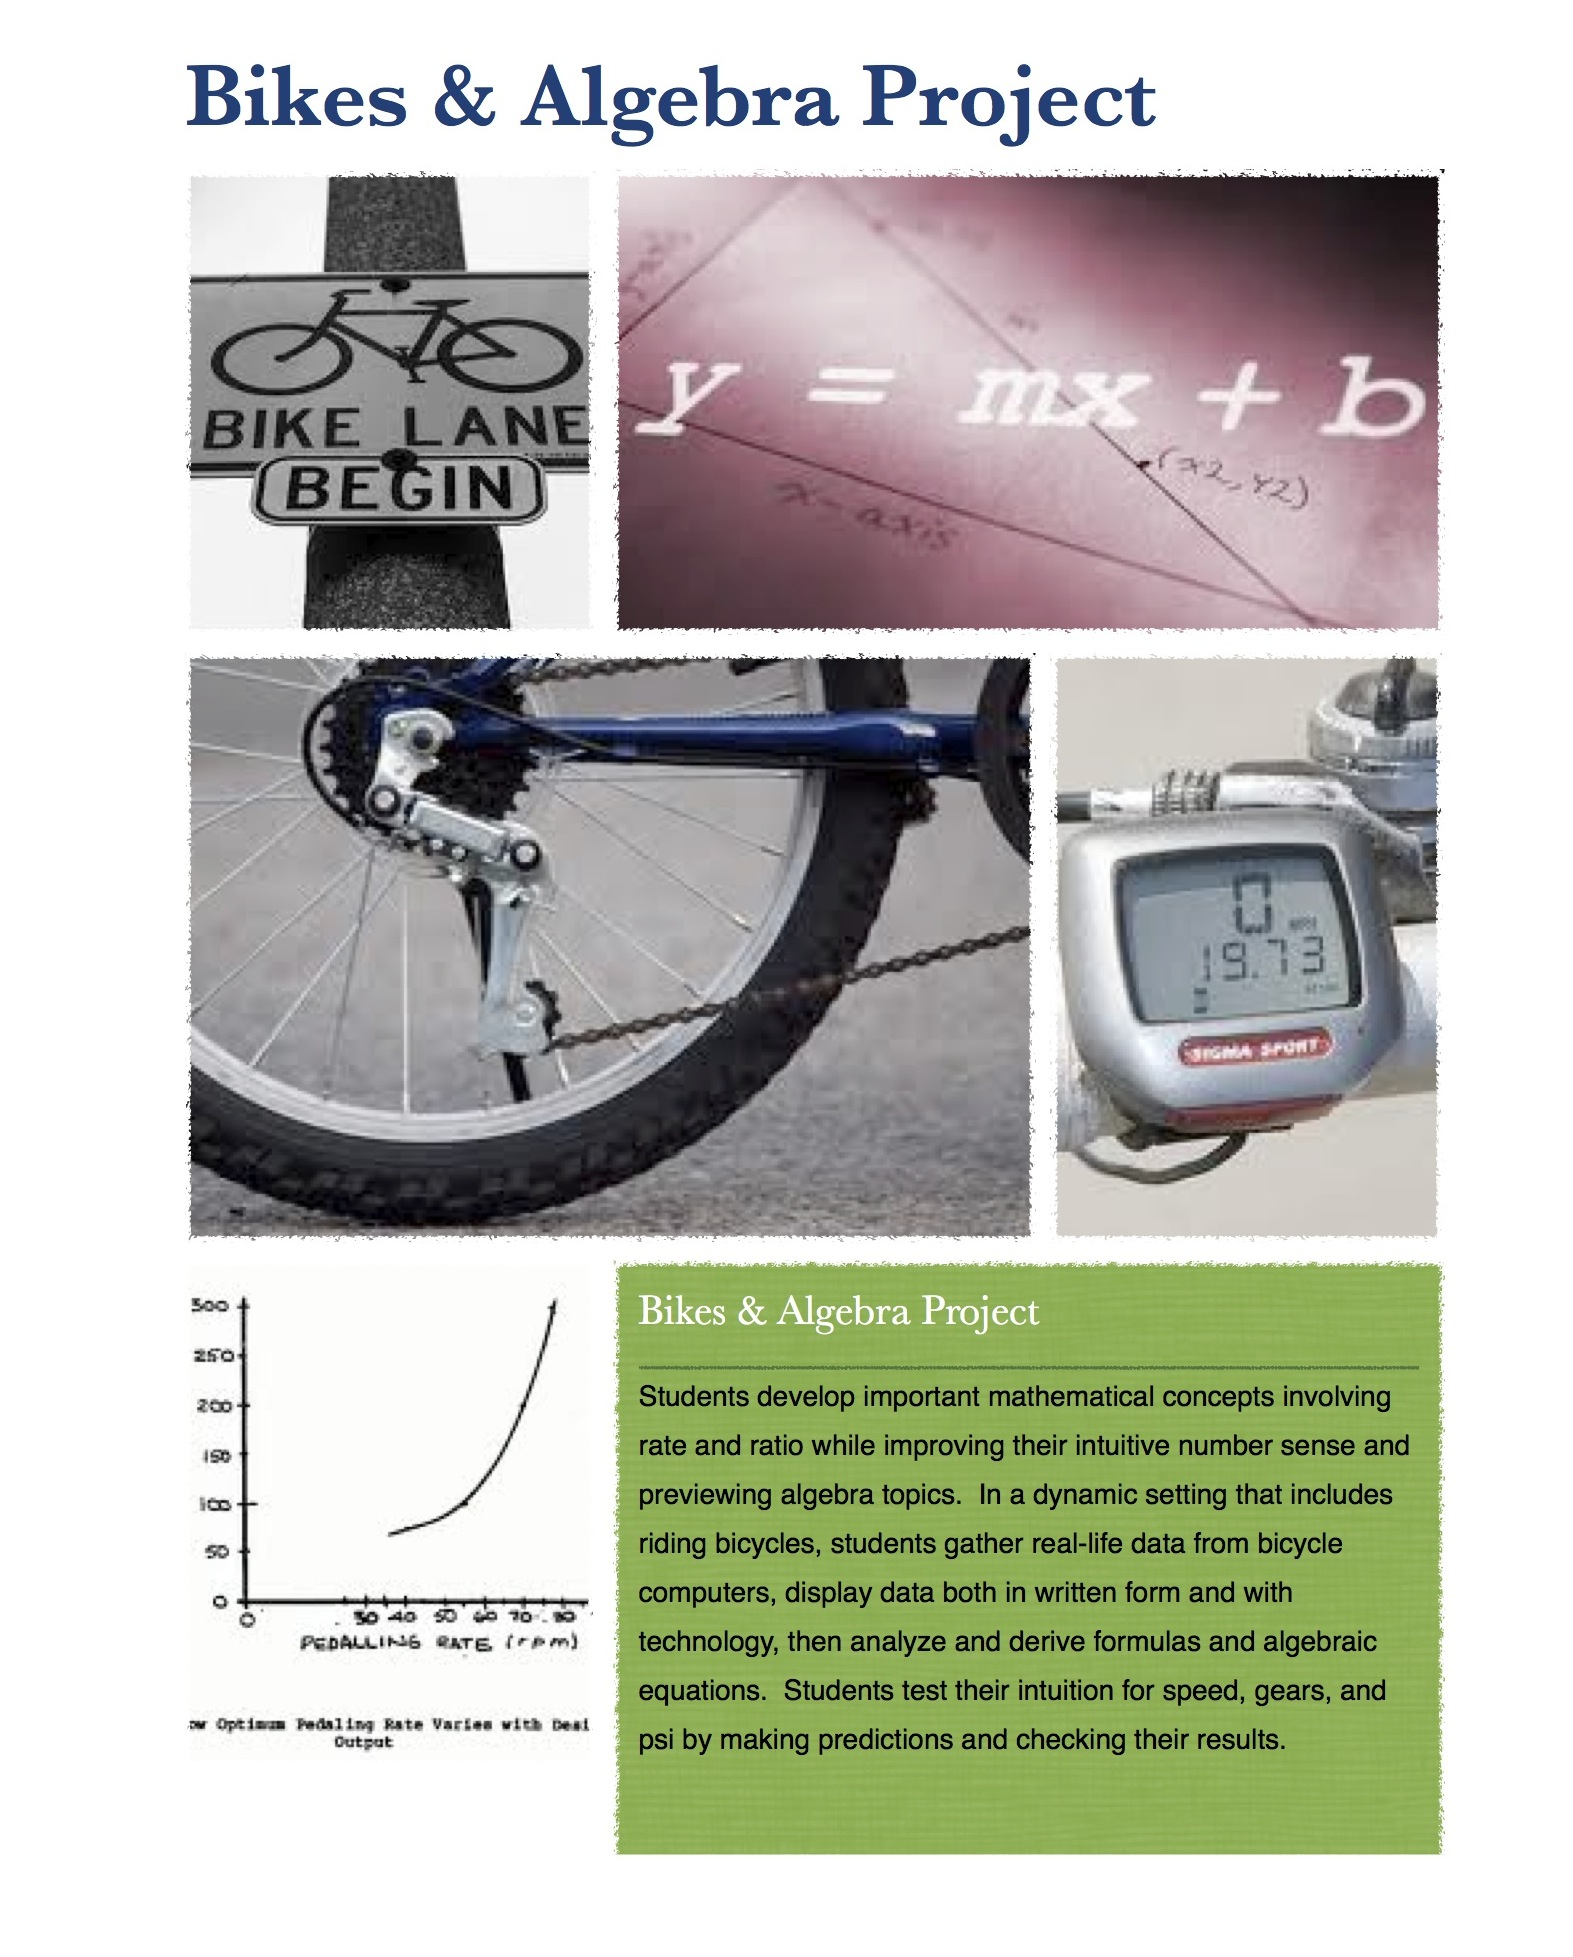 Bikes & Algebra  - In a dynamic setting that includes riding bicycles, students gather real-life data from bicycle computers, display data both in written form and with technology, then analyze and derive formulas and algebraic equations.